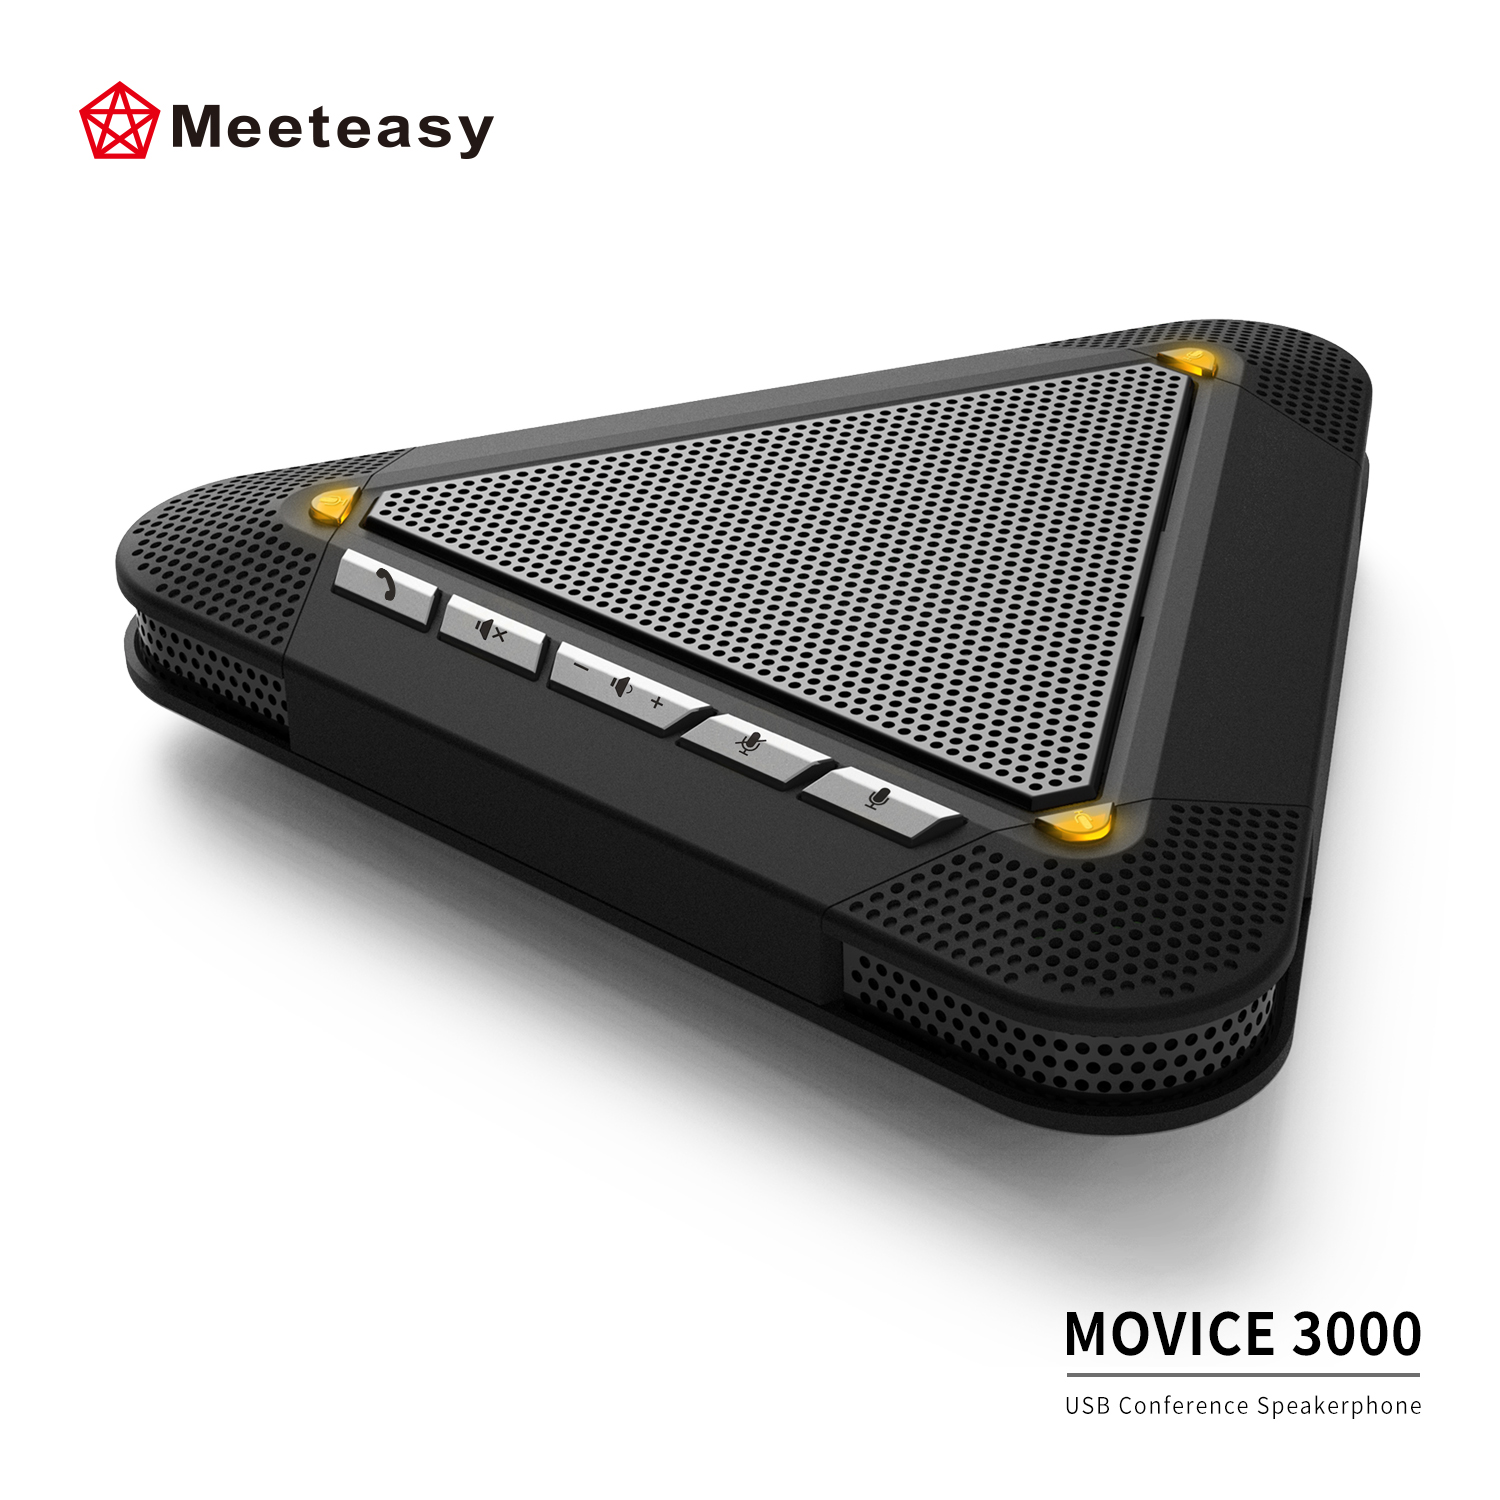 Meeteasy MVOICE 3000 PC Laptop USB Conference Speakerphones for AV Sound Call